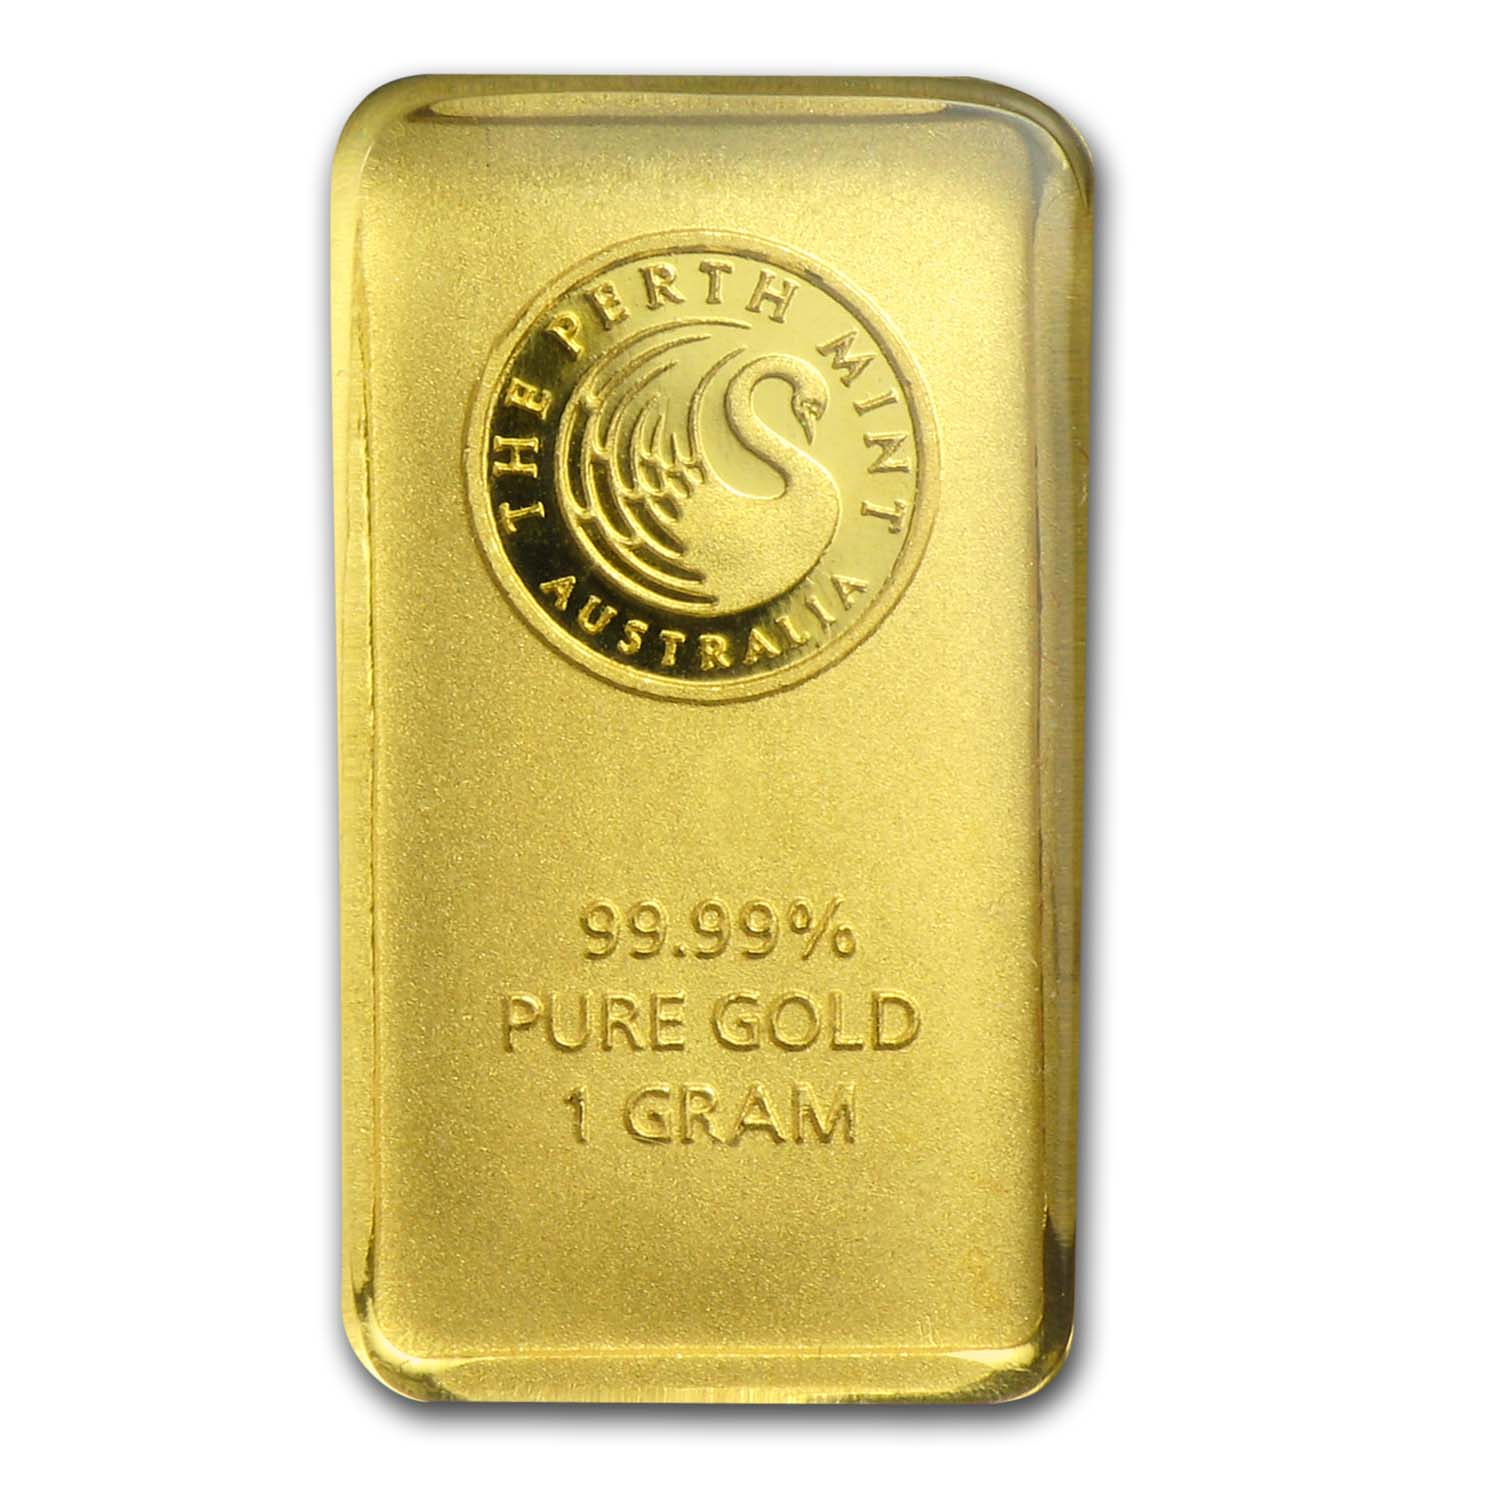 1 gram Gold Bars - Perth Mint (In Assay)